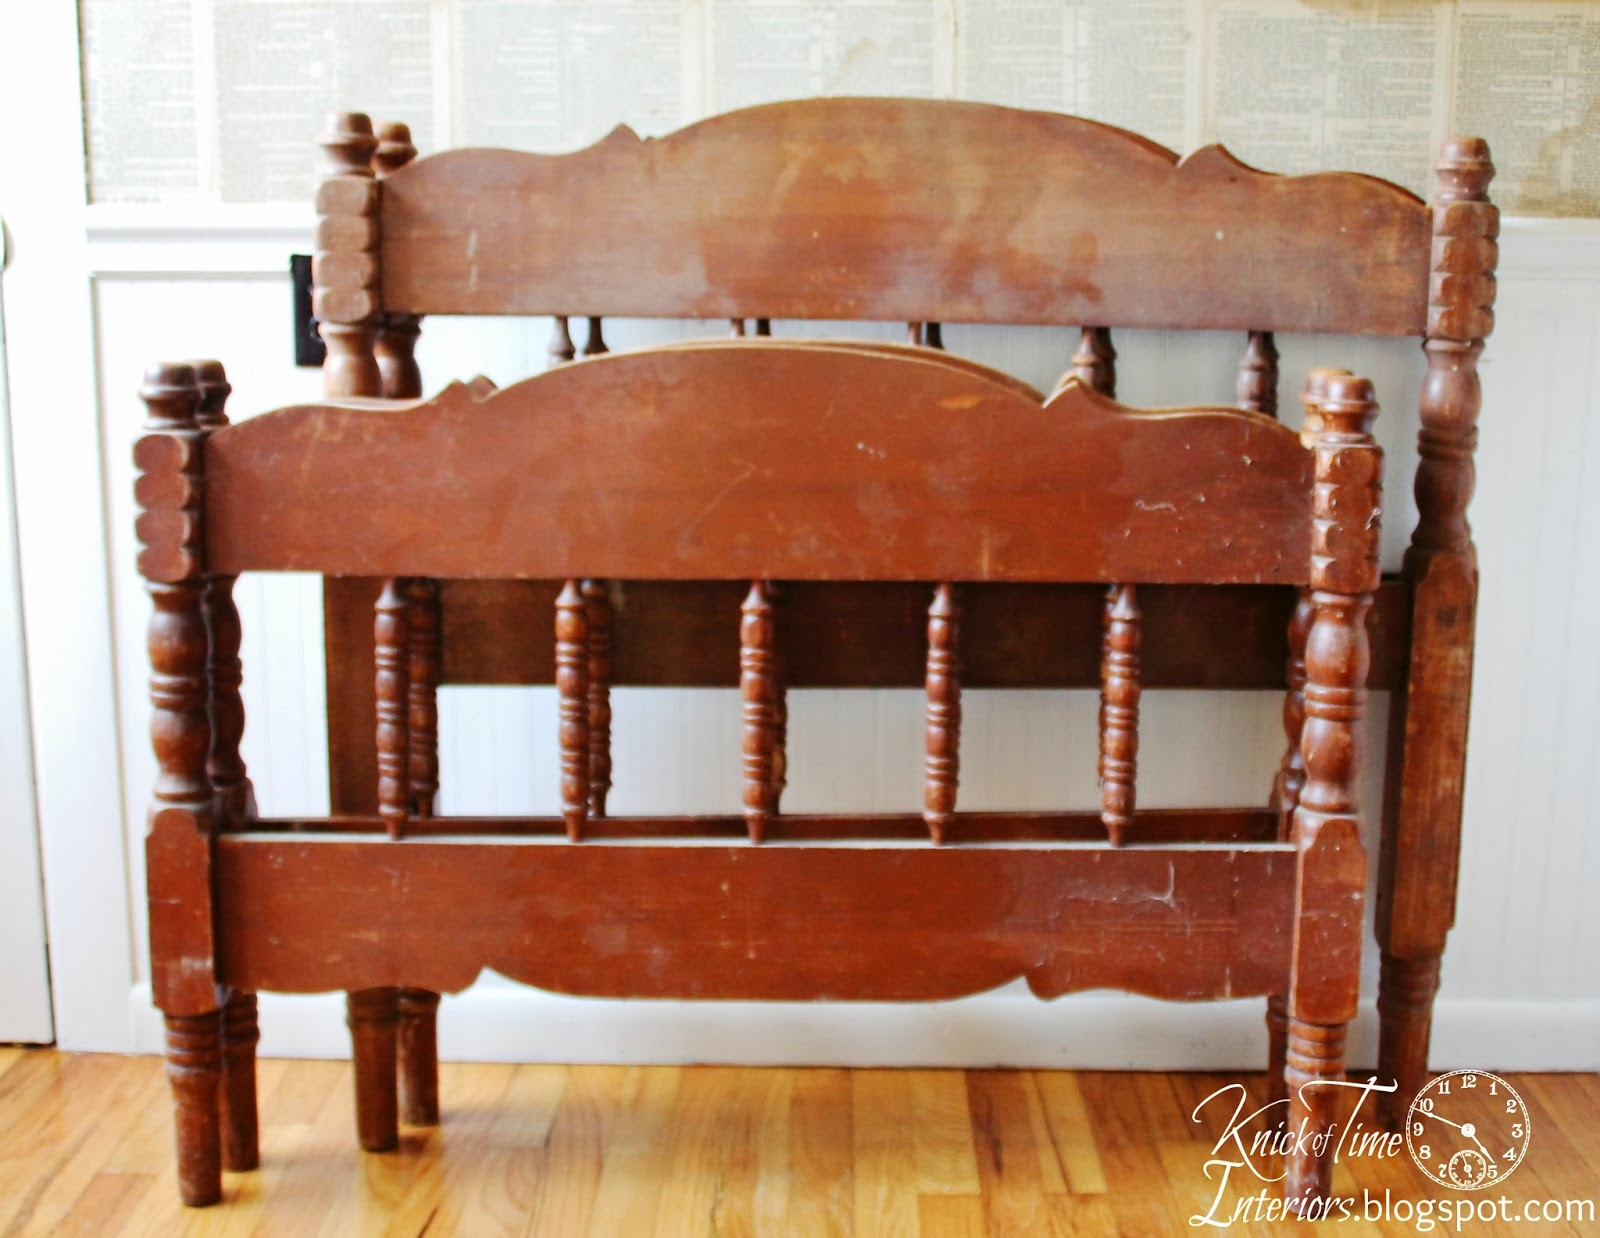 Repurposed How To Repurpose Headboards Into Creative New Projects Knick Of Time